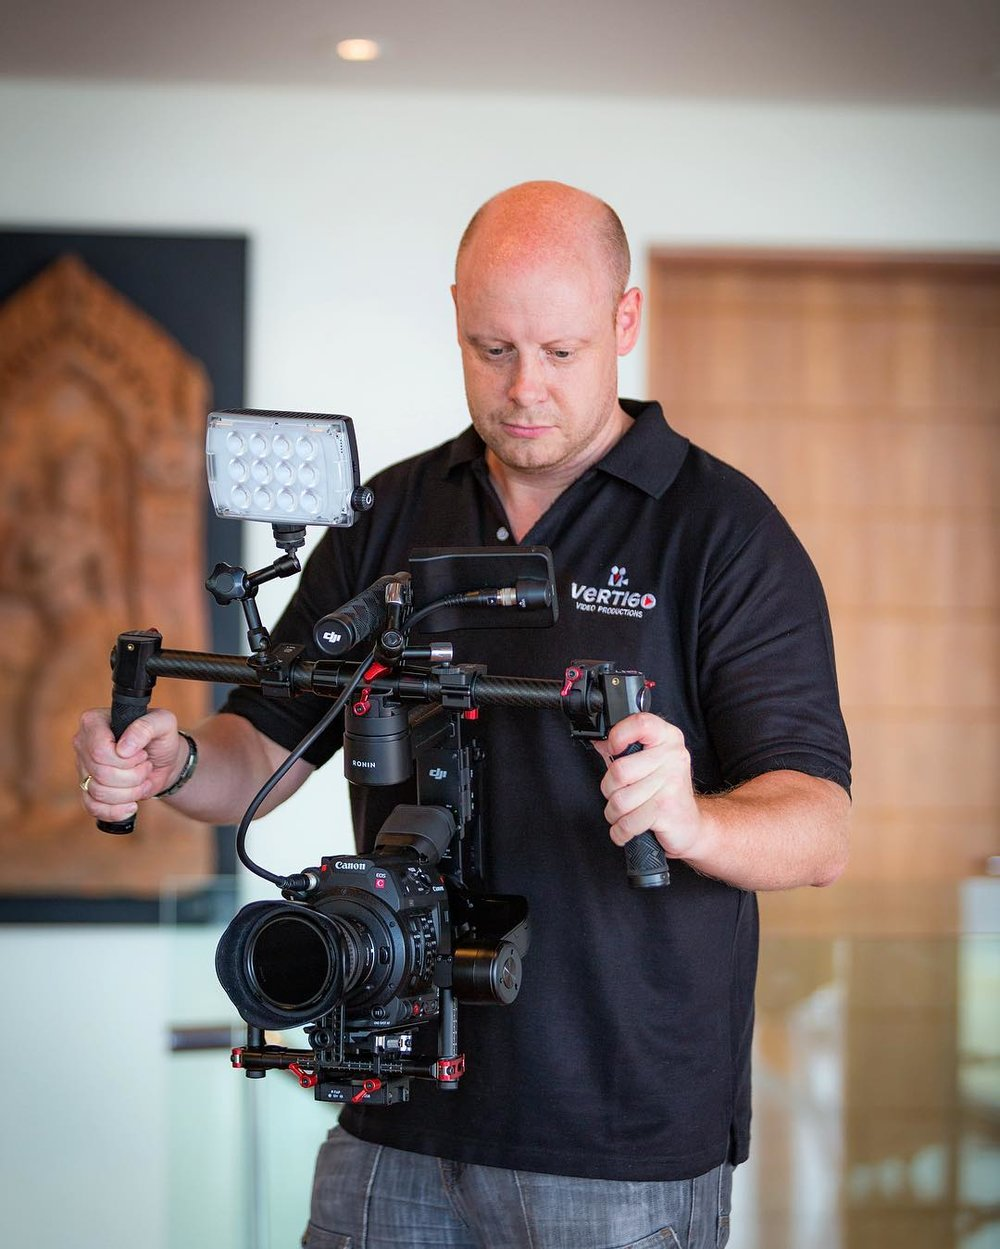 Gear: Canon C200 Cinema Camera (4K) with DJI Ronin-M stabiliser